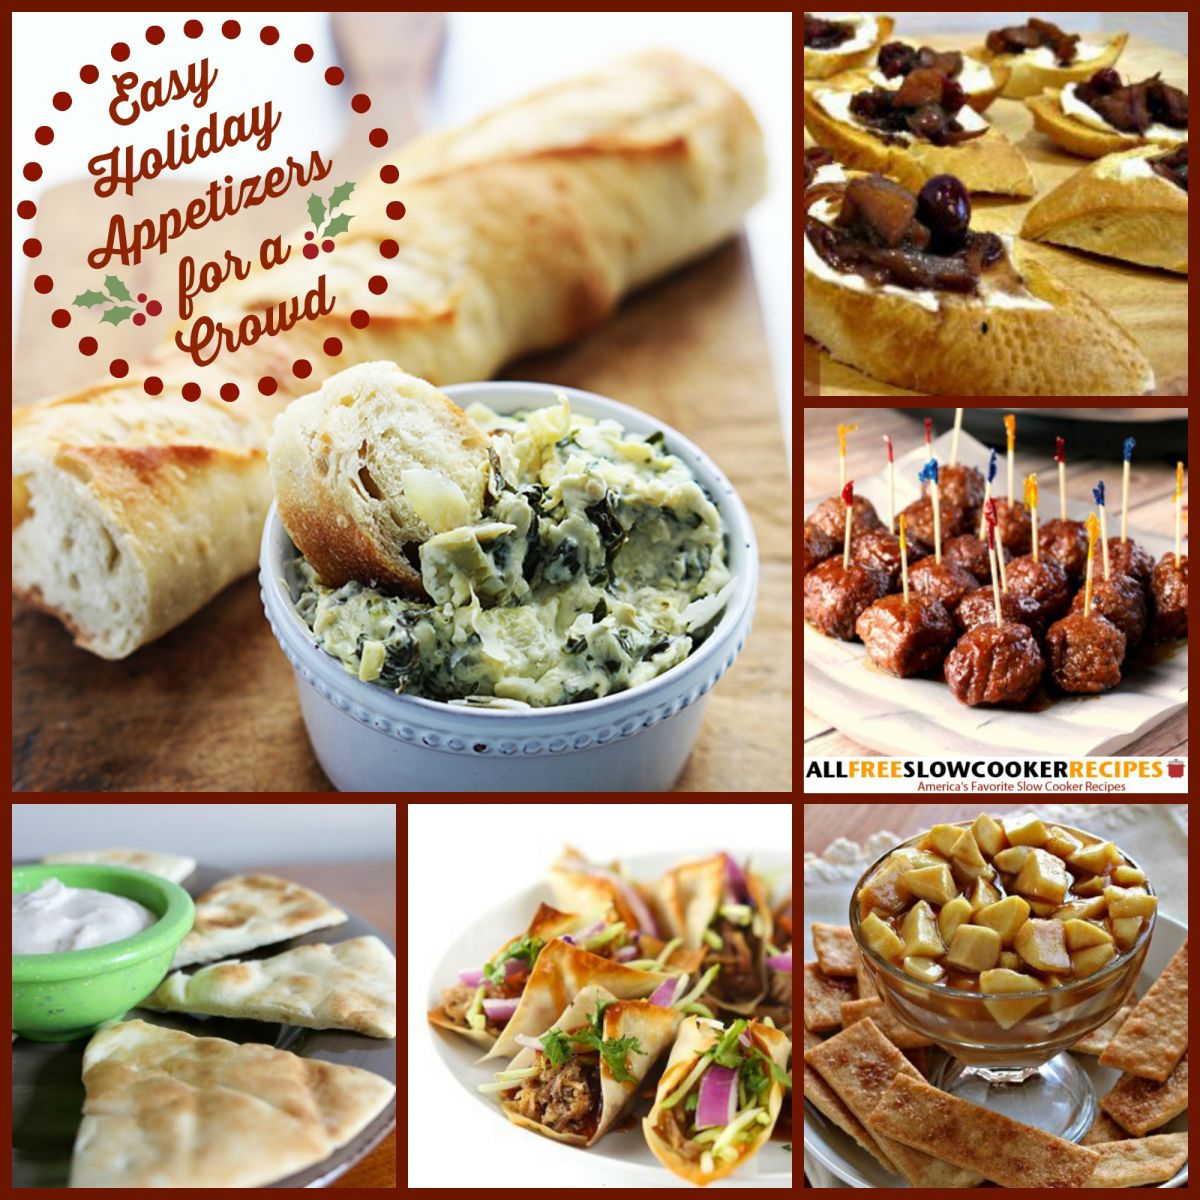 Slow Cooker Christmas Recipes 8 Christmas Appetizer Recipes Plus